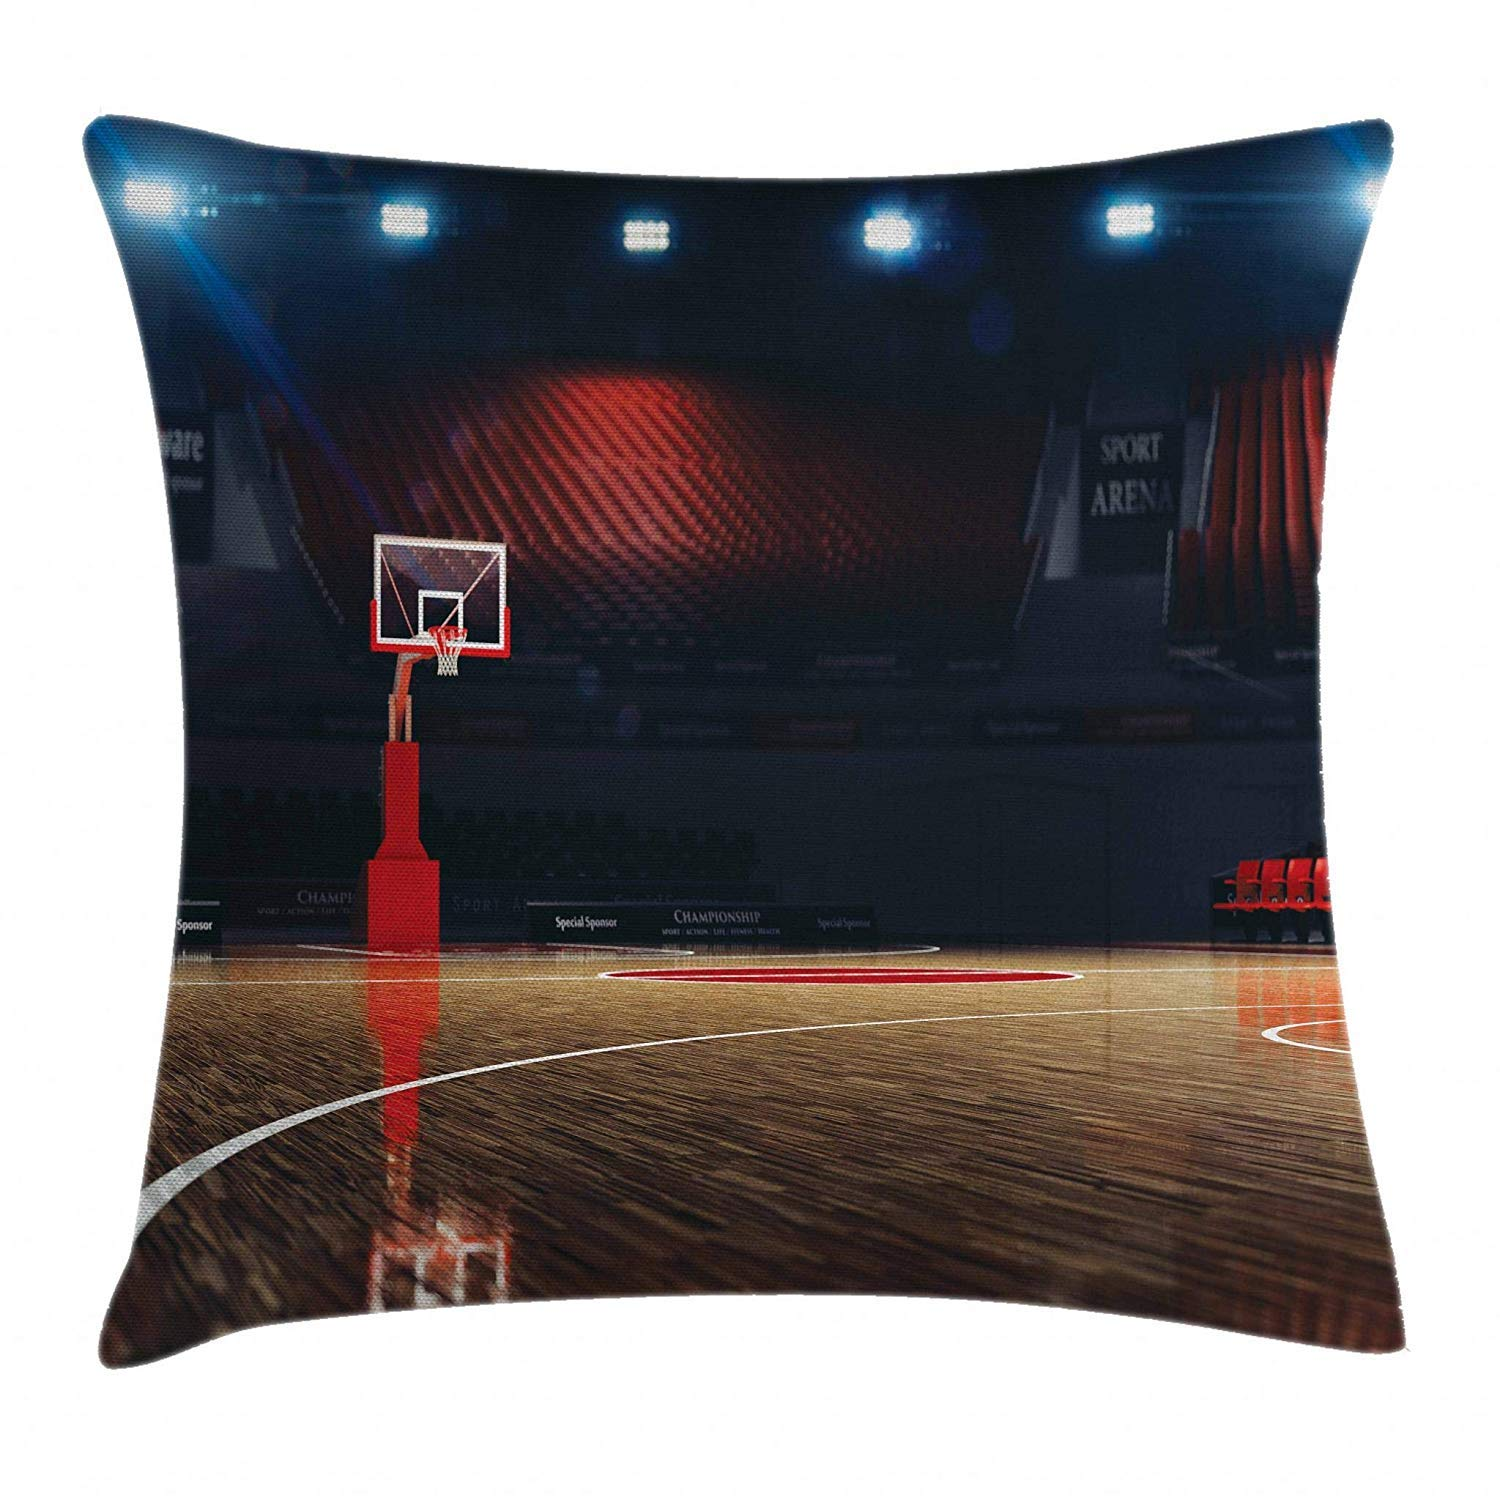 """Basketball Throw Pillow Cushion Cover Cotton Linen,Picture of Empty Basketball Court Sport Arena with Wood Floor Print,Decorative Square Accent Pillow Case Double Print,Brown Black,16""""X16"""""""